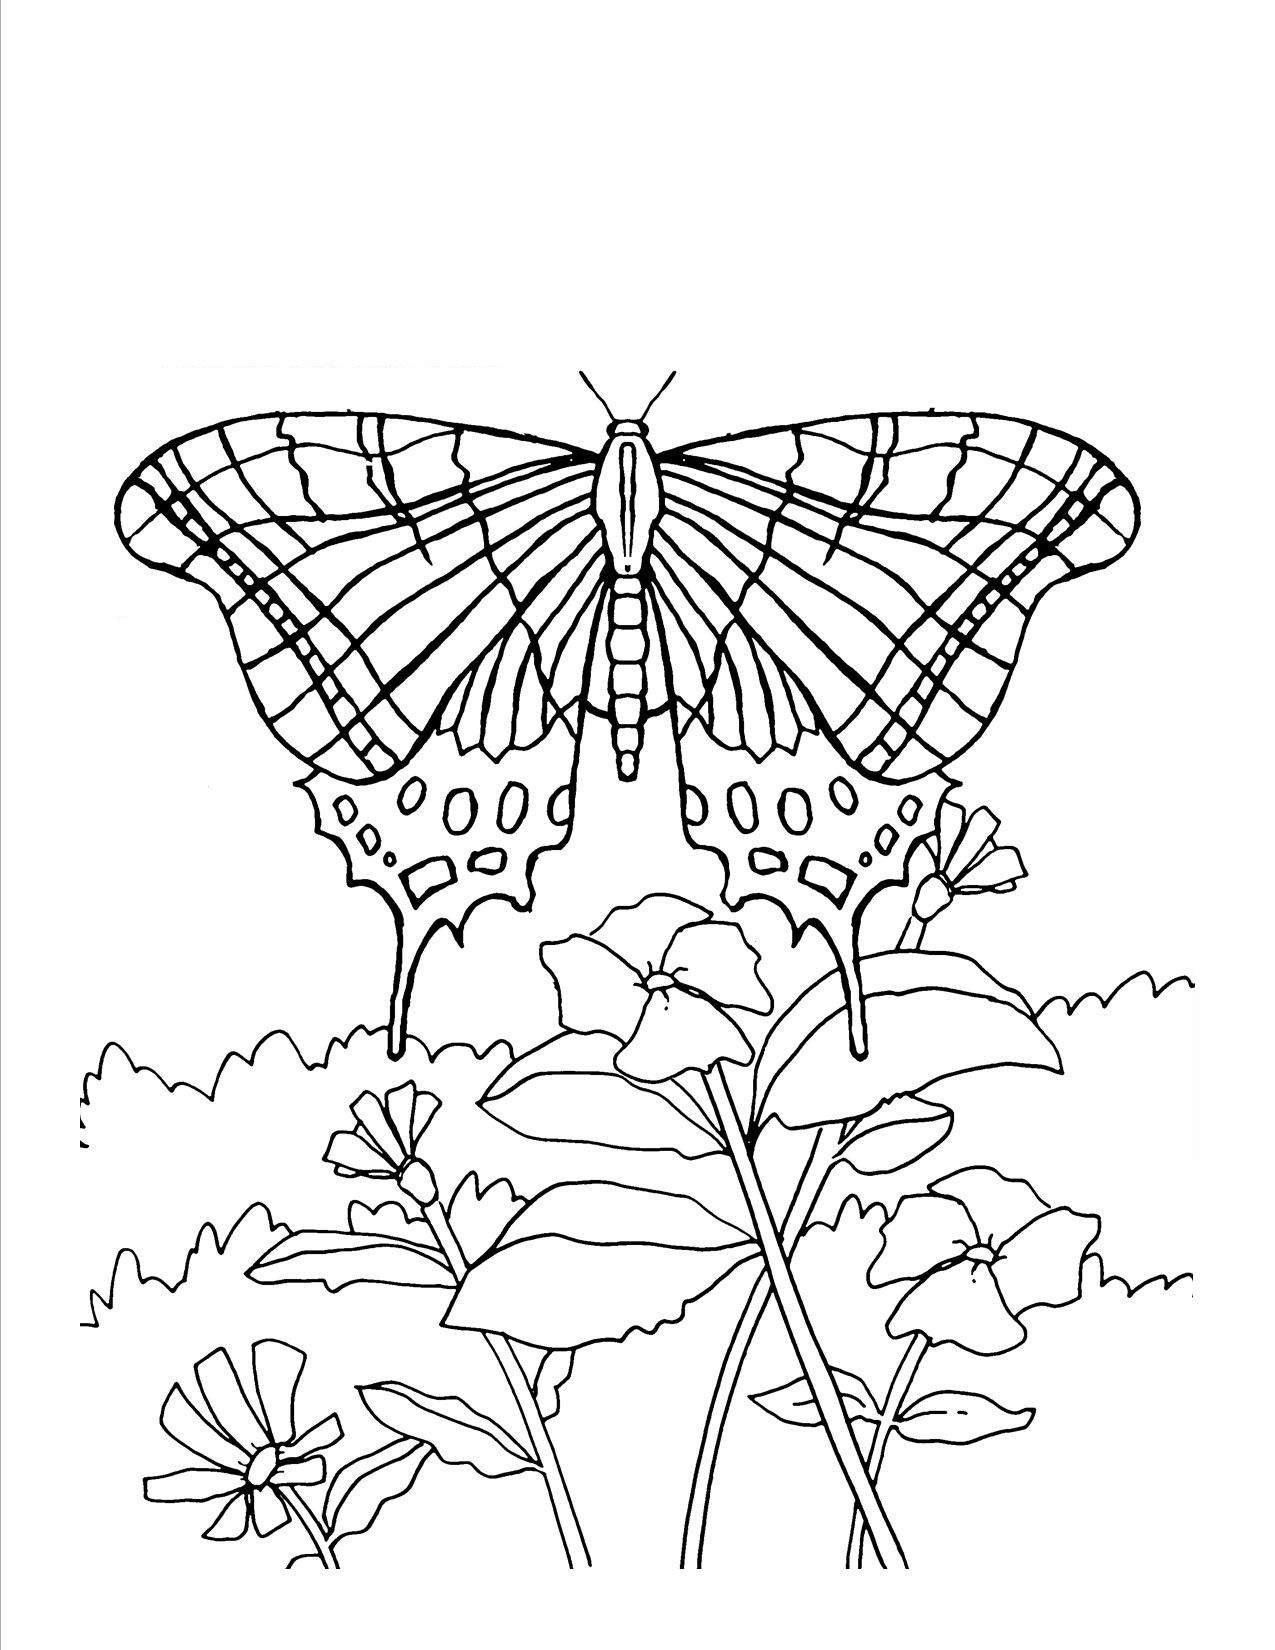 Butterfly Coloring Page For Adults Youngandtae Com Insect Coloring Pages Butterfly Coloring Page Bird Coloring Pages [ 1650 x 1275 Pixel ]